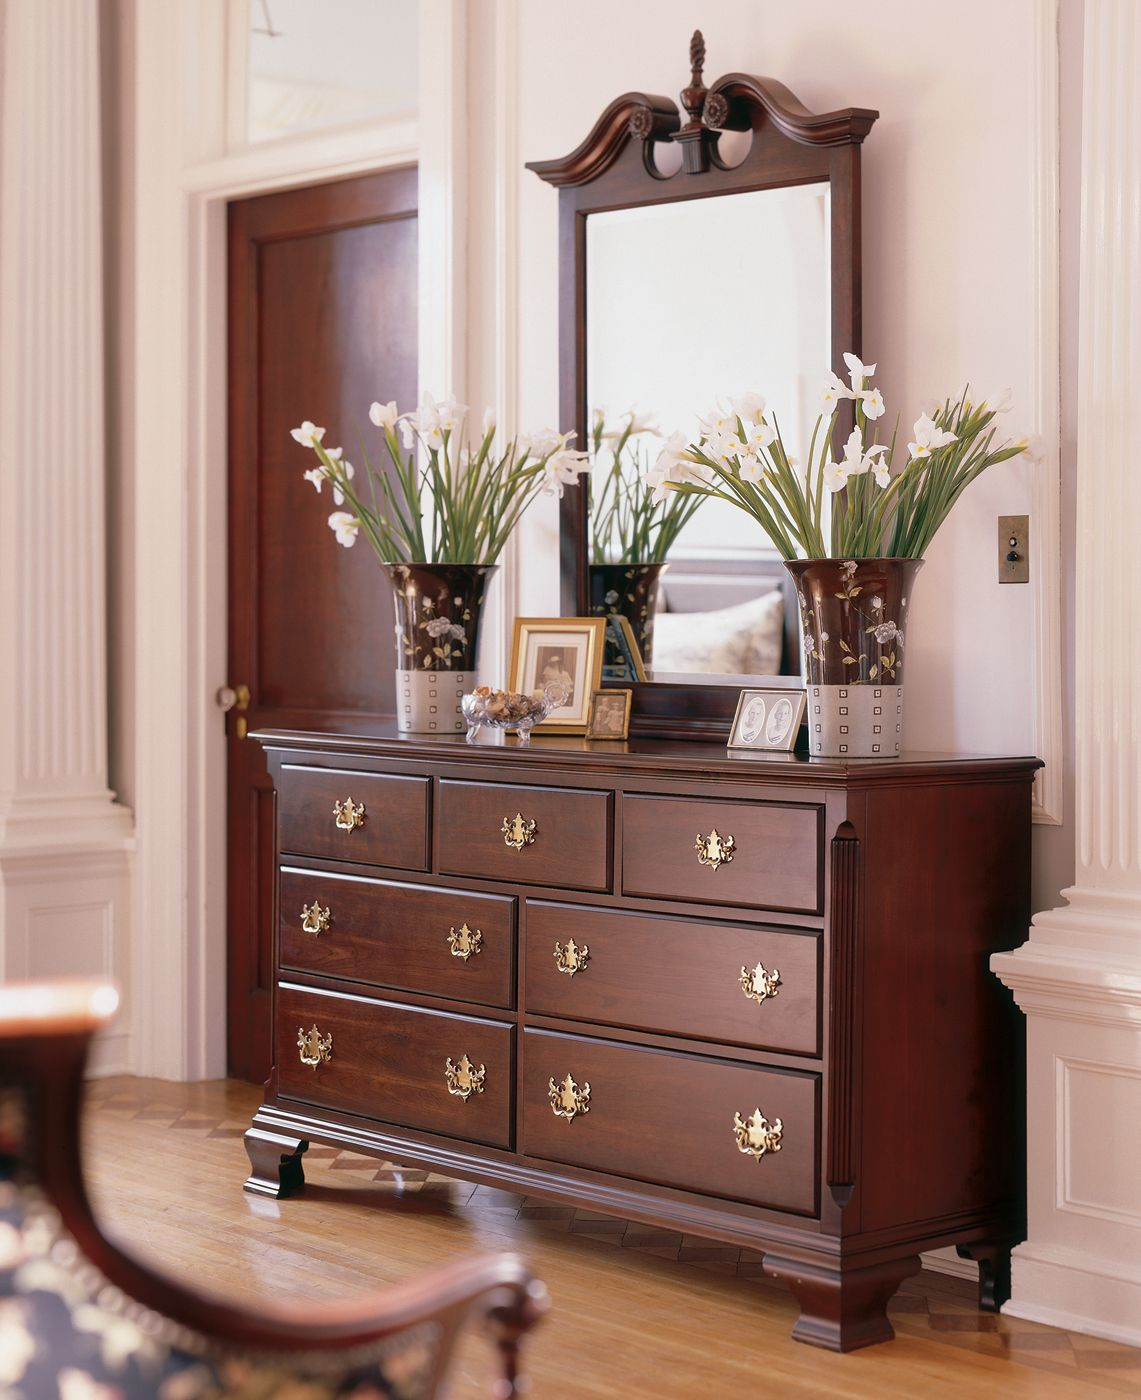 Kincaid Furniture 60 110 Carriage House Double Dresser At Atg S Browse Our